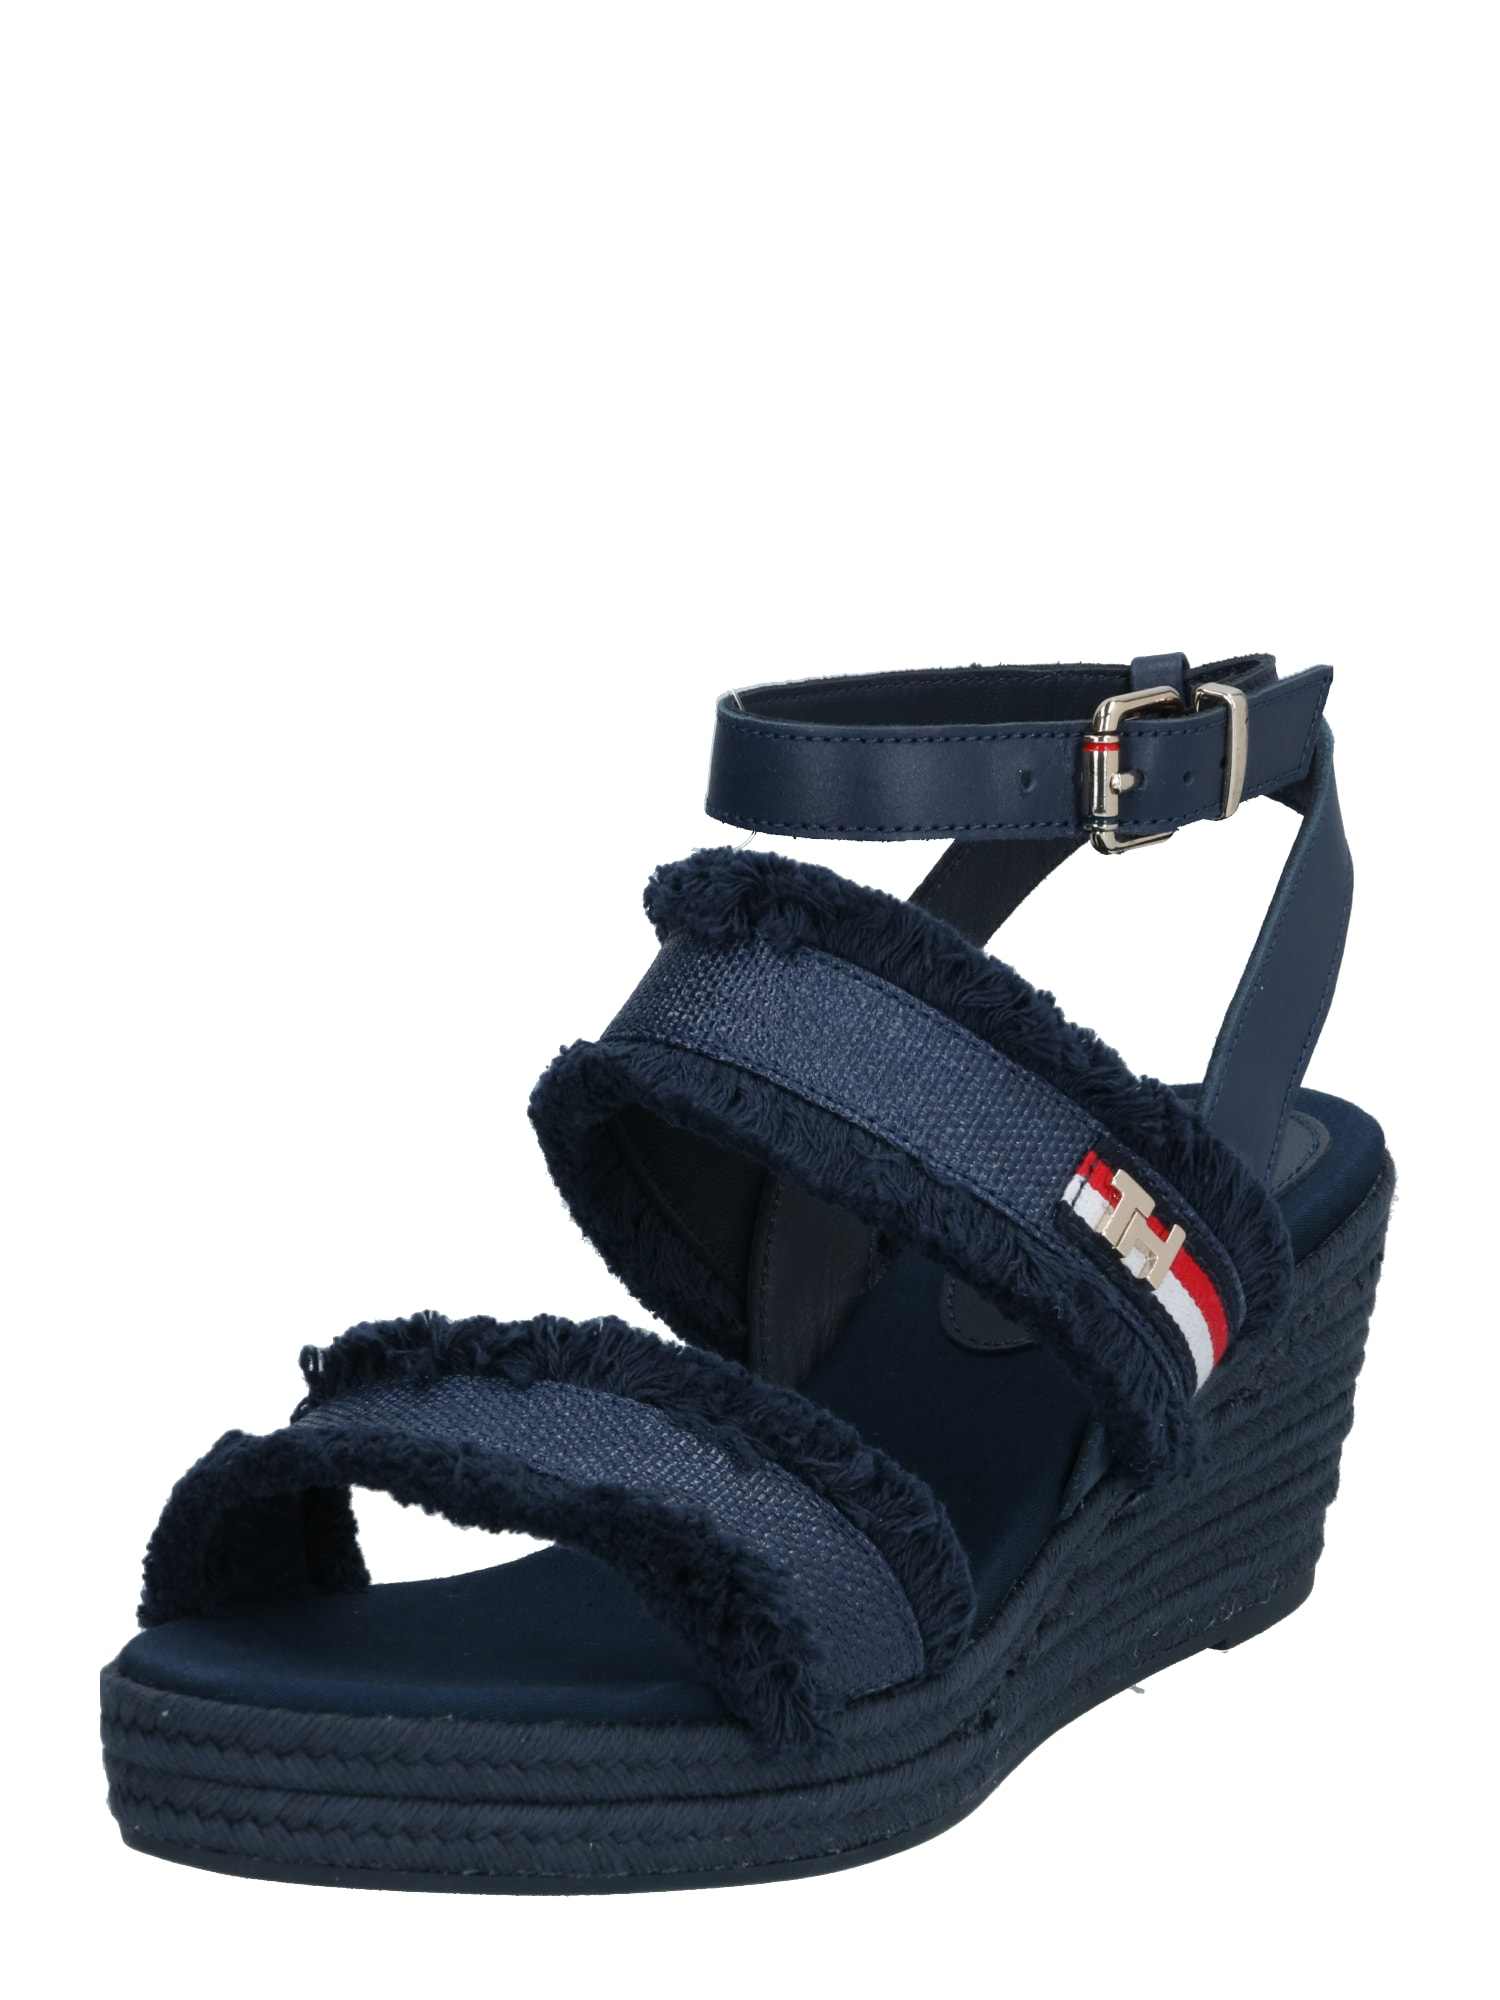 TOMMY HILFIGER Sandalai 'TOMMY FRINGES MID WEDGE SANDAL' tamsiai mėlyna